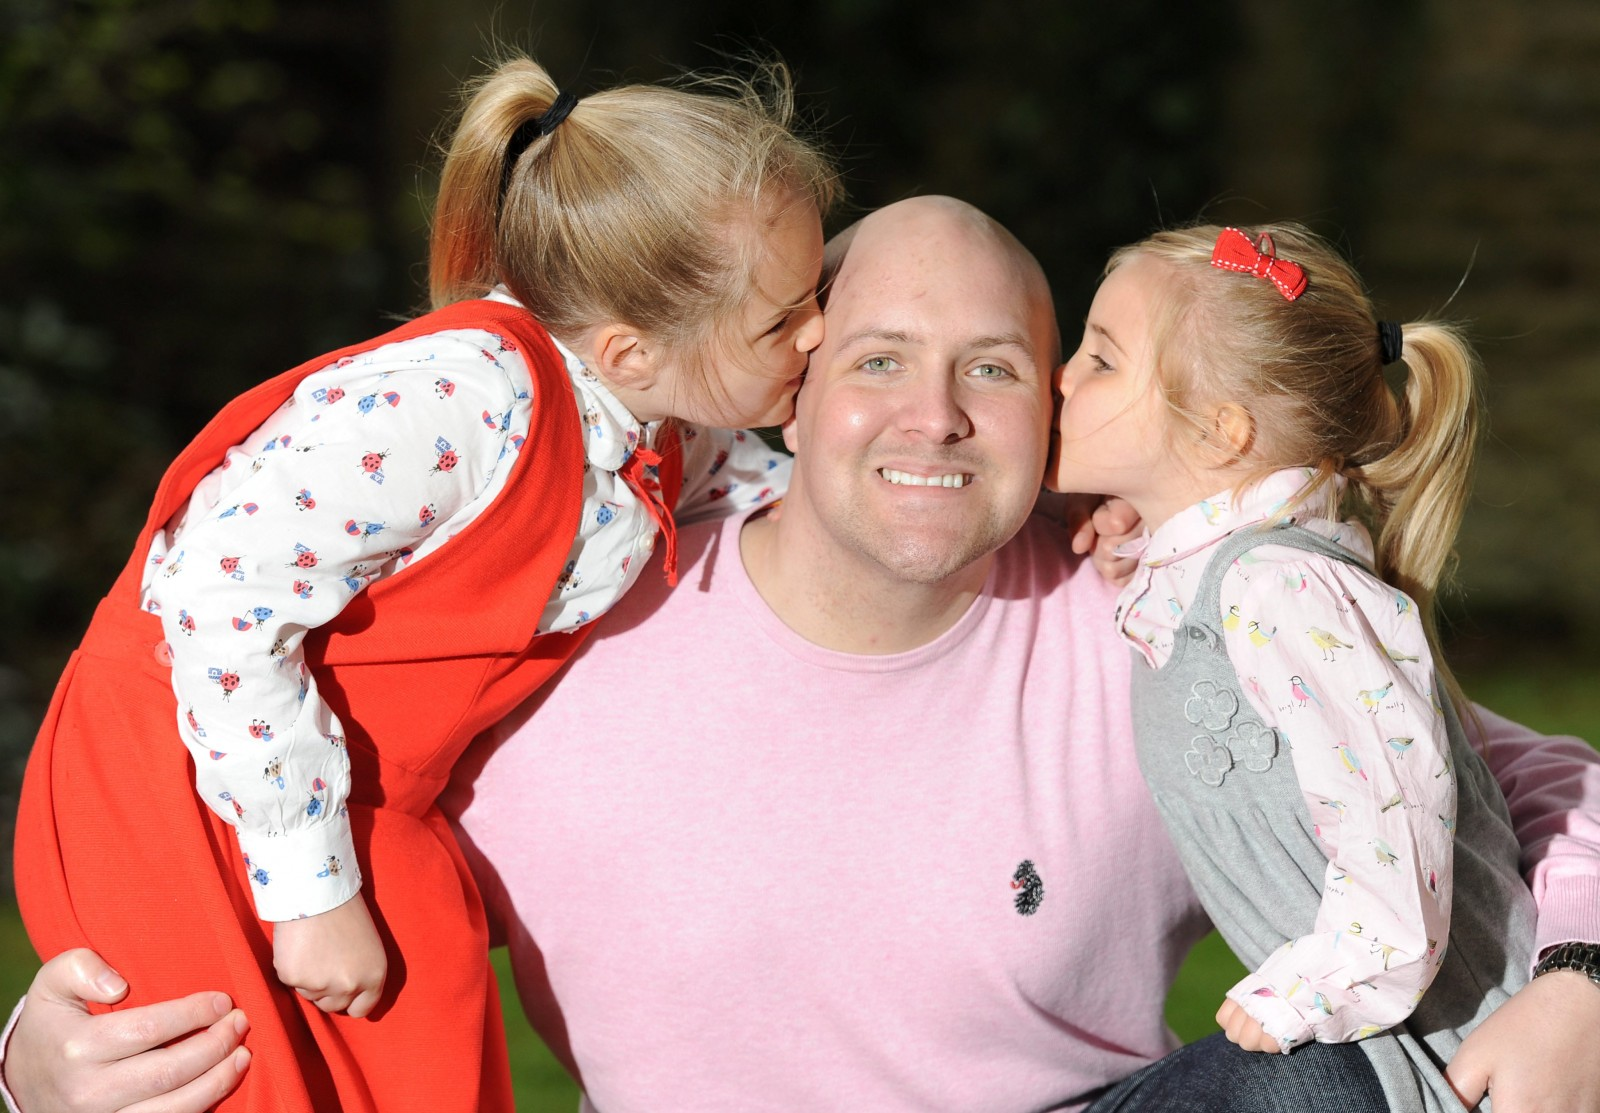 Find out what these amazingly brave sisters are doing for their terminally ill dad